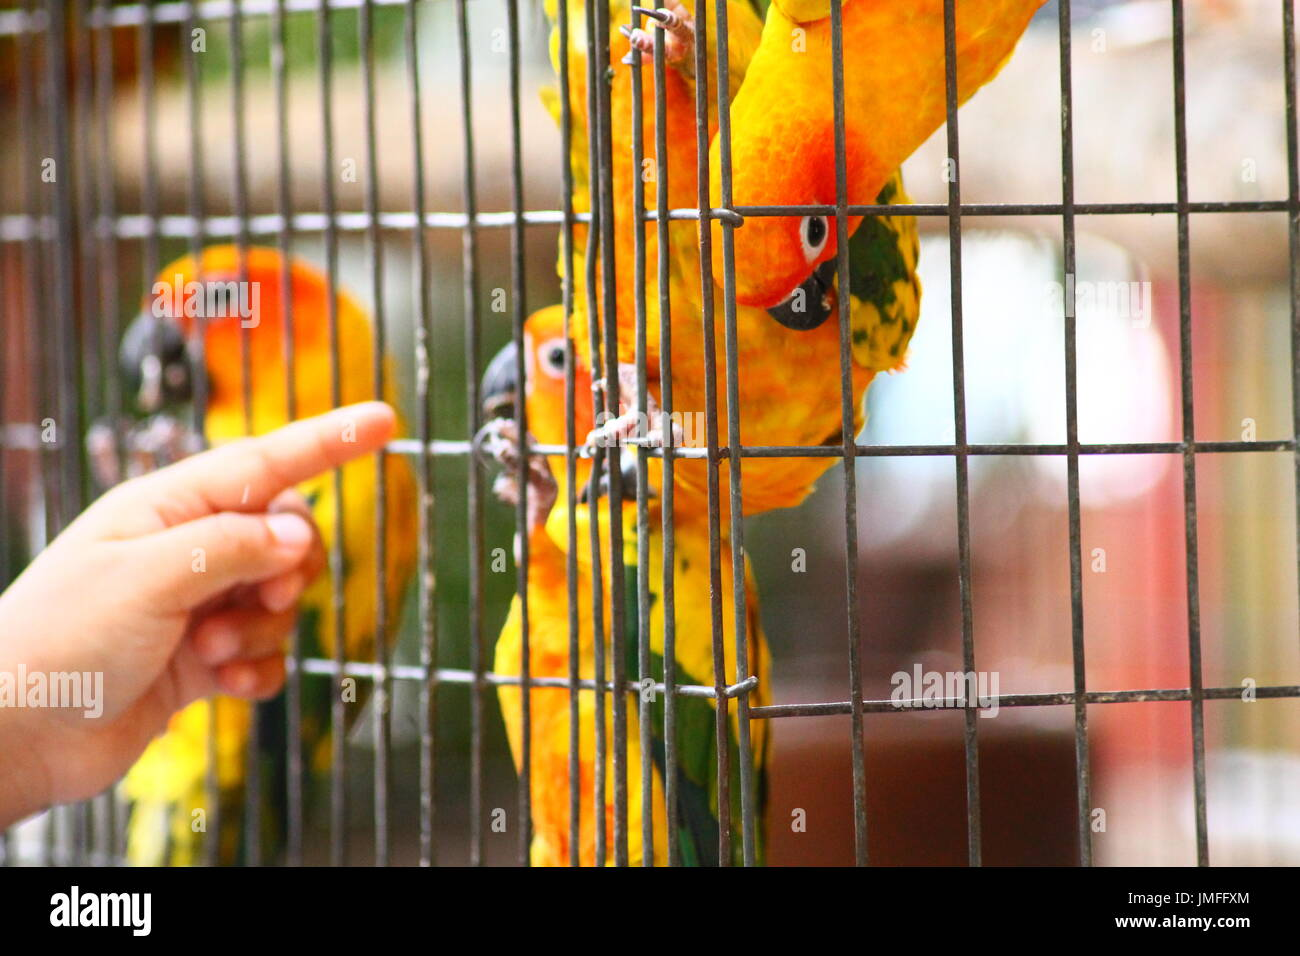 birds inside the cage - Stock Image